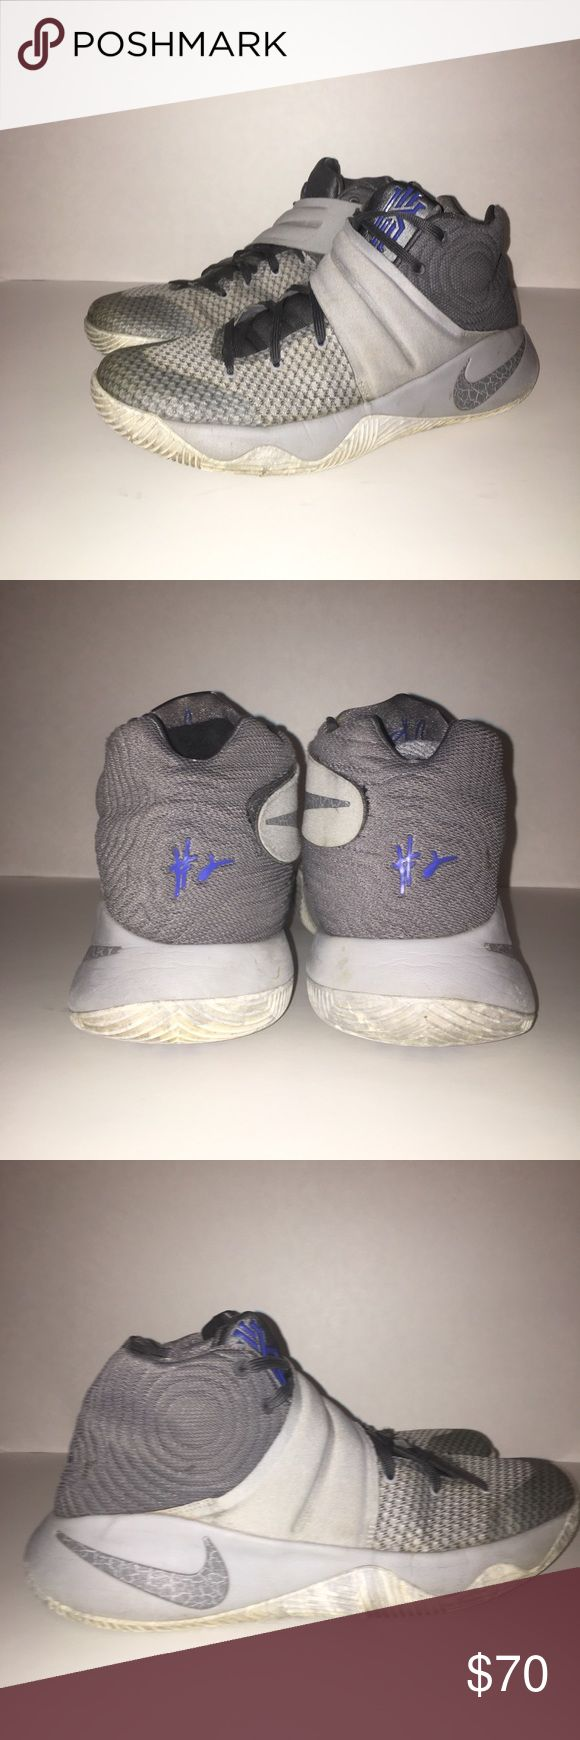 Kyrie 2 Great basketball shoes Nike Shoes Sneakers